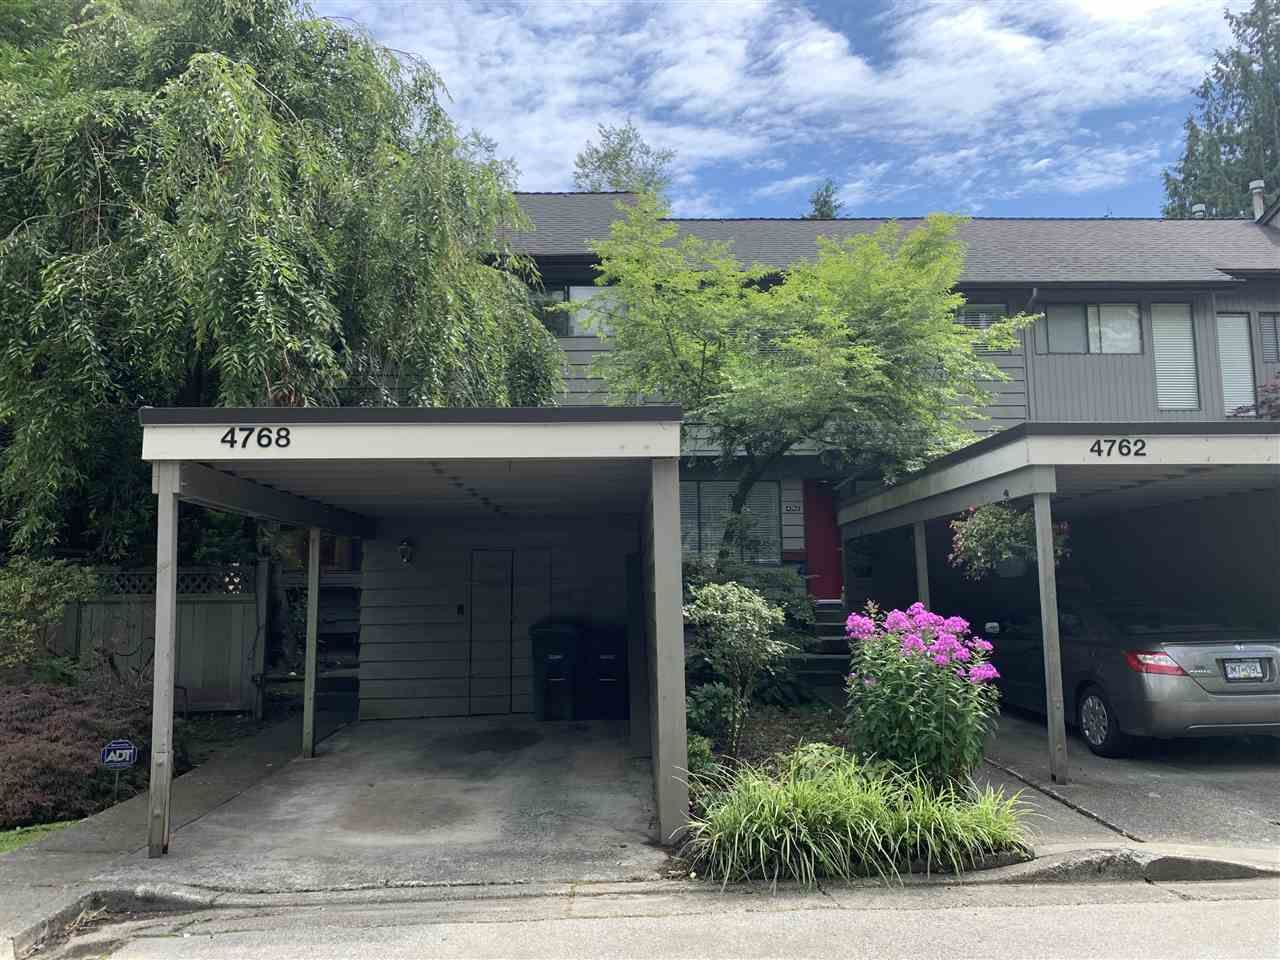 """Main Photo: 4768 CEDARGLEN Place in Burnaby: Greentree Village Townhouse for sale in """"GREENTREE VILLAGE"""" (Burnaby South)  : MLS®# R2388988"""